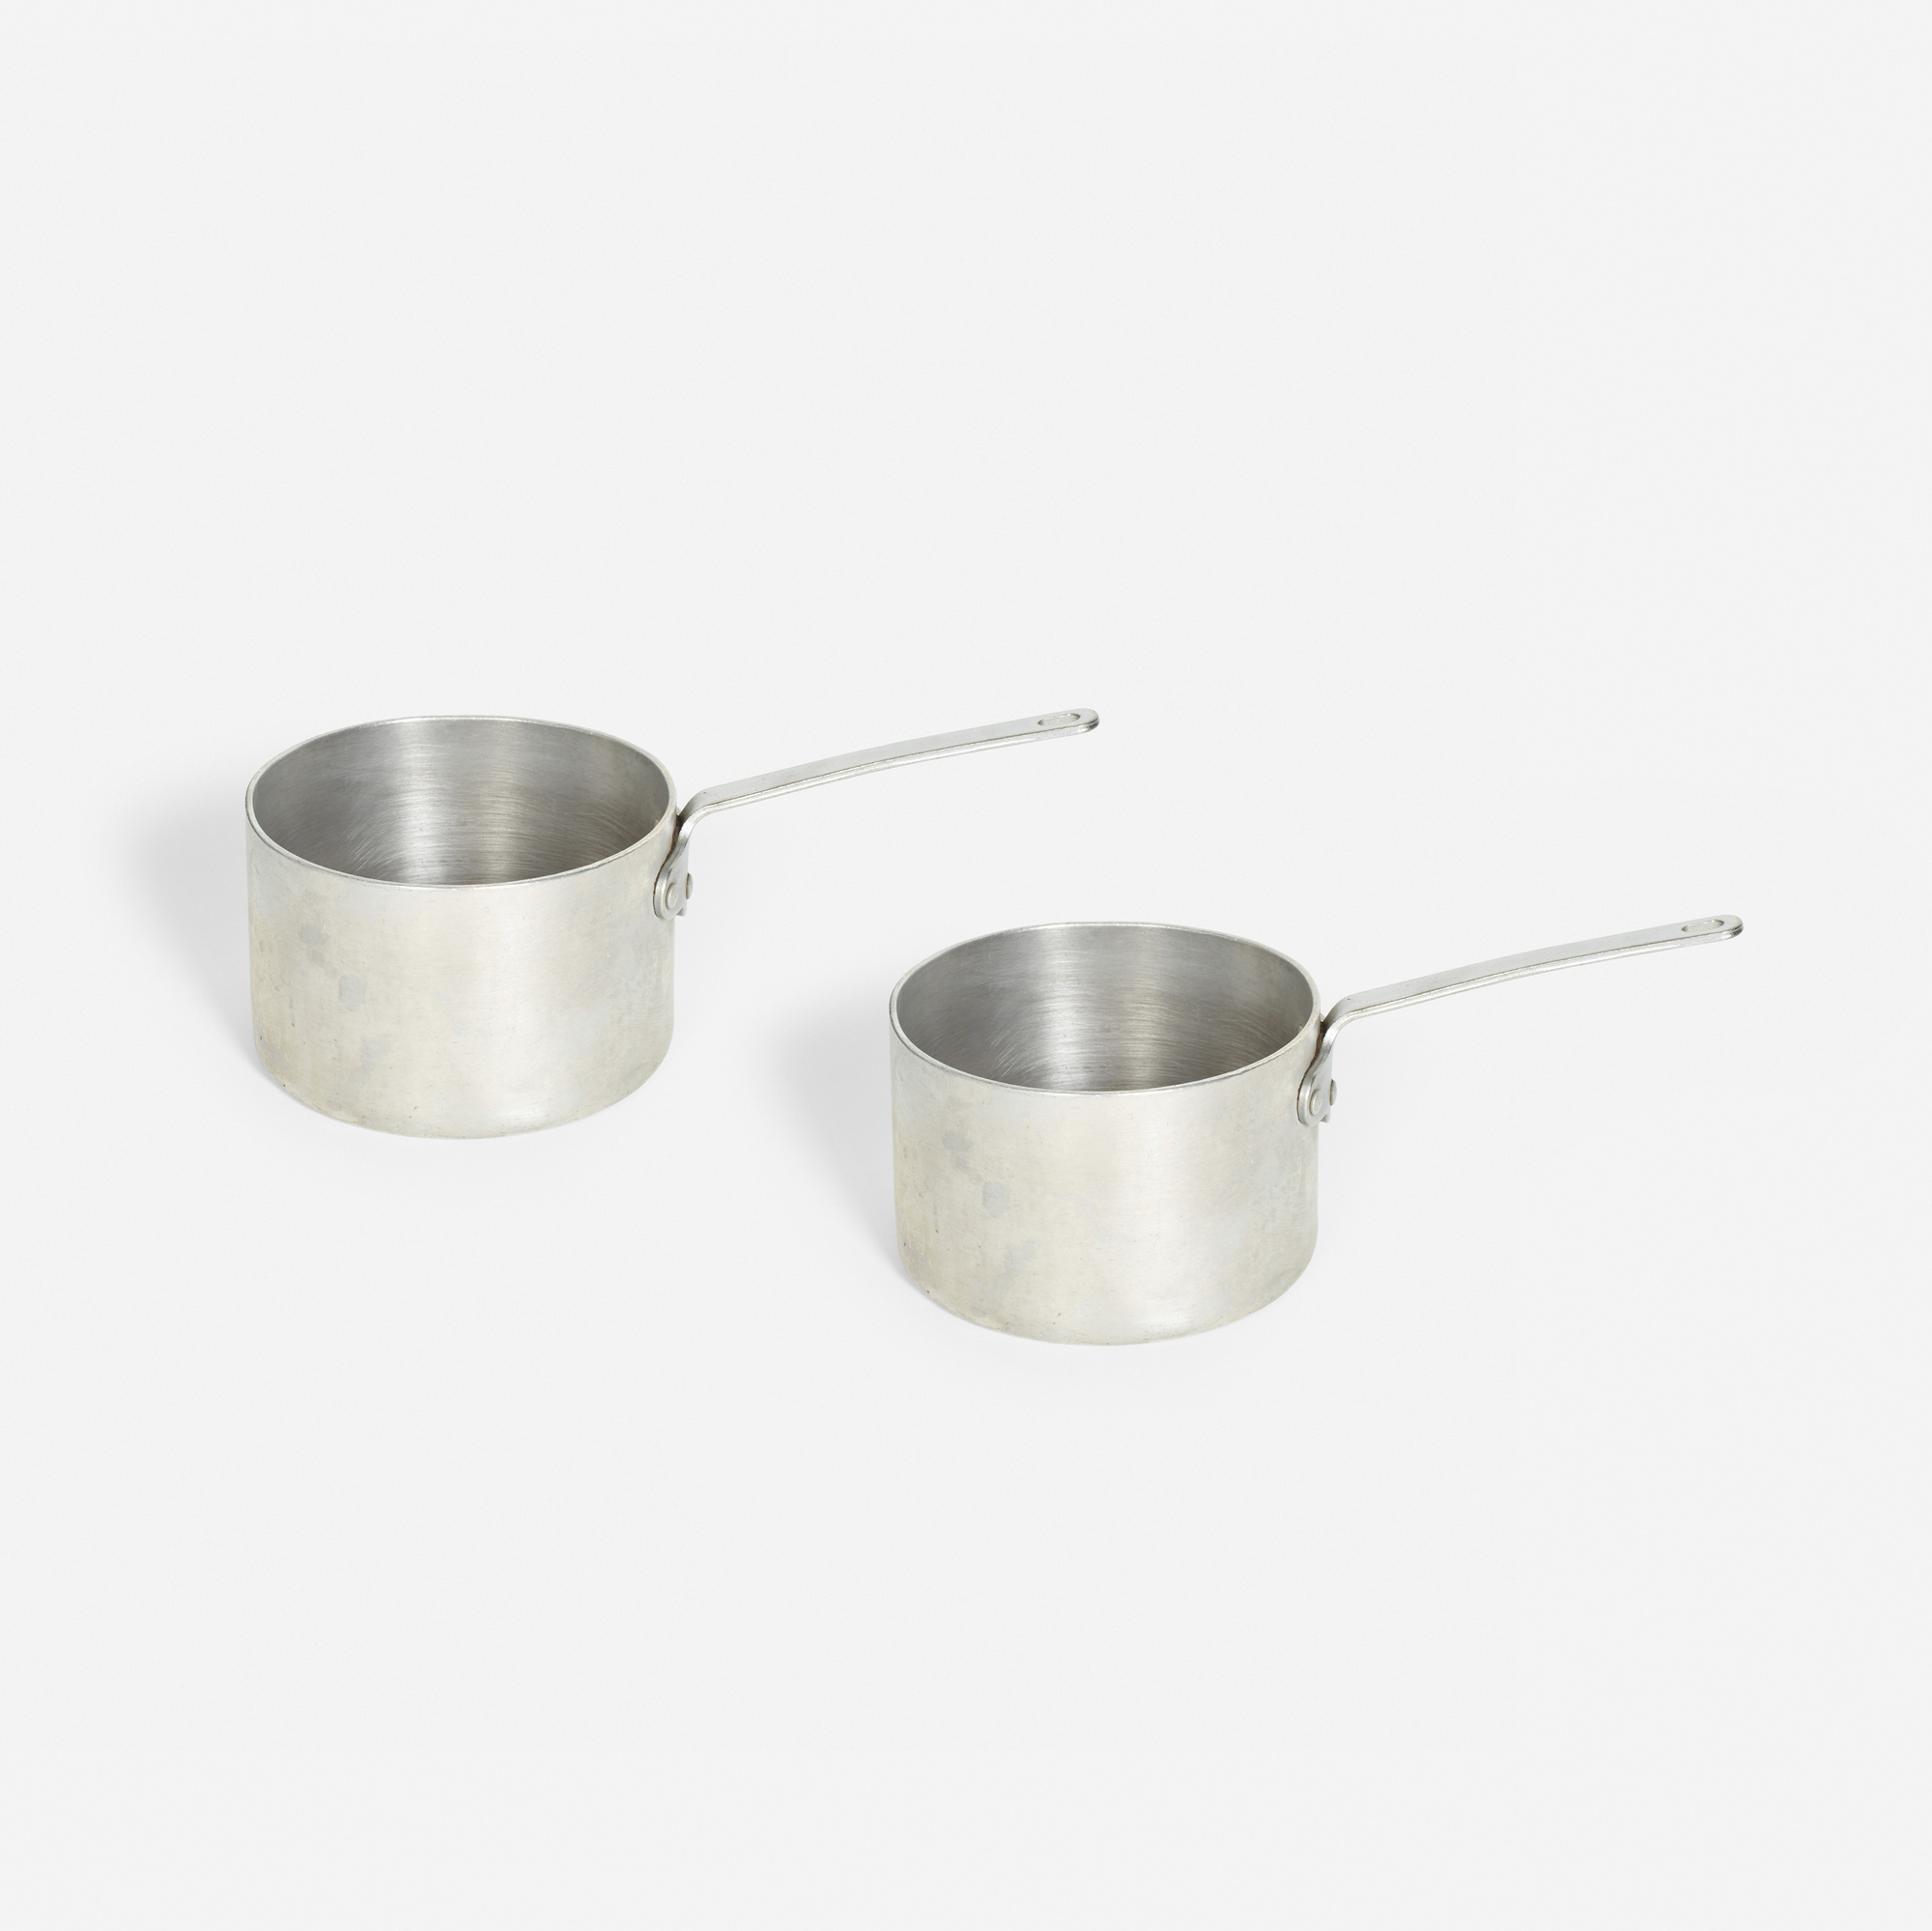 909:  / stock pots from the kitchen of The Four Seasons, pair (1 of 1)